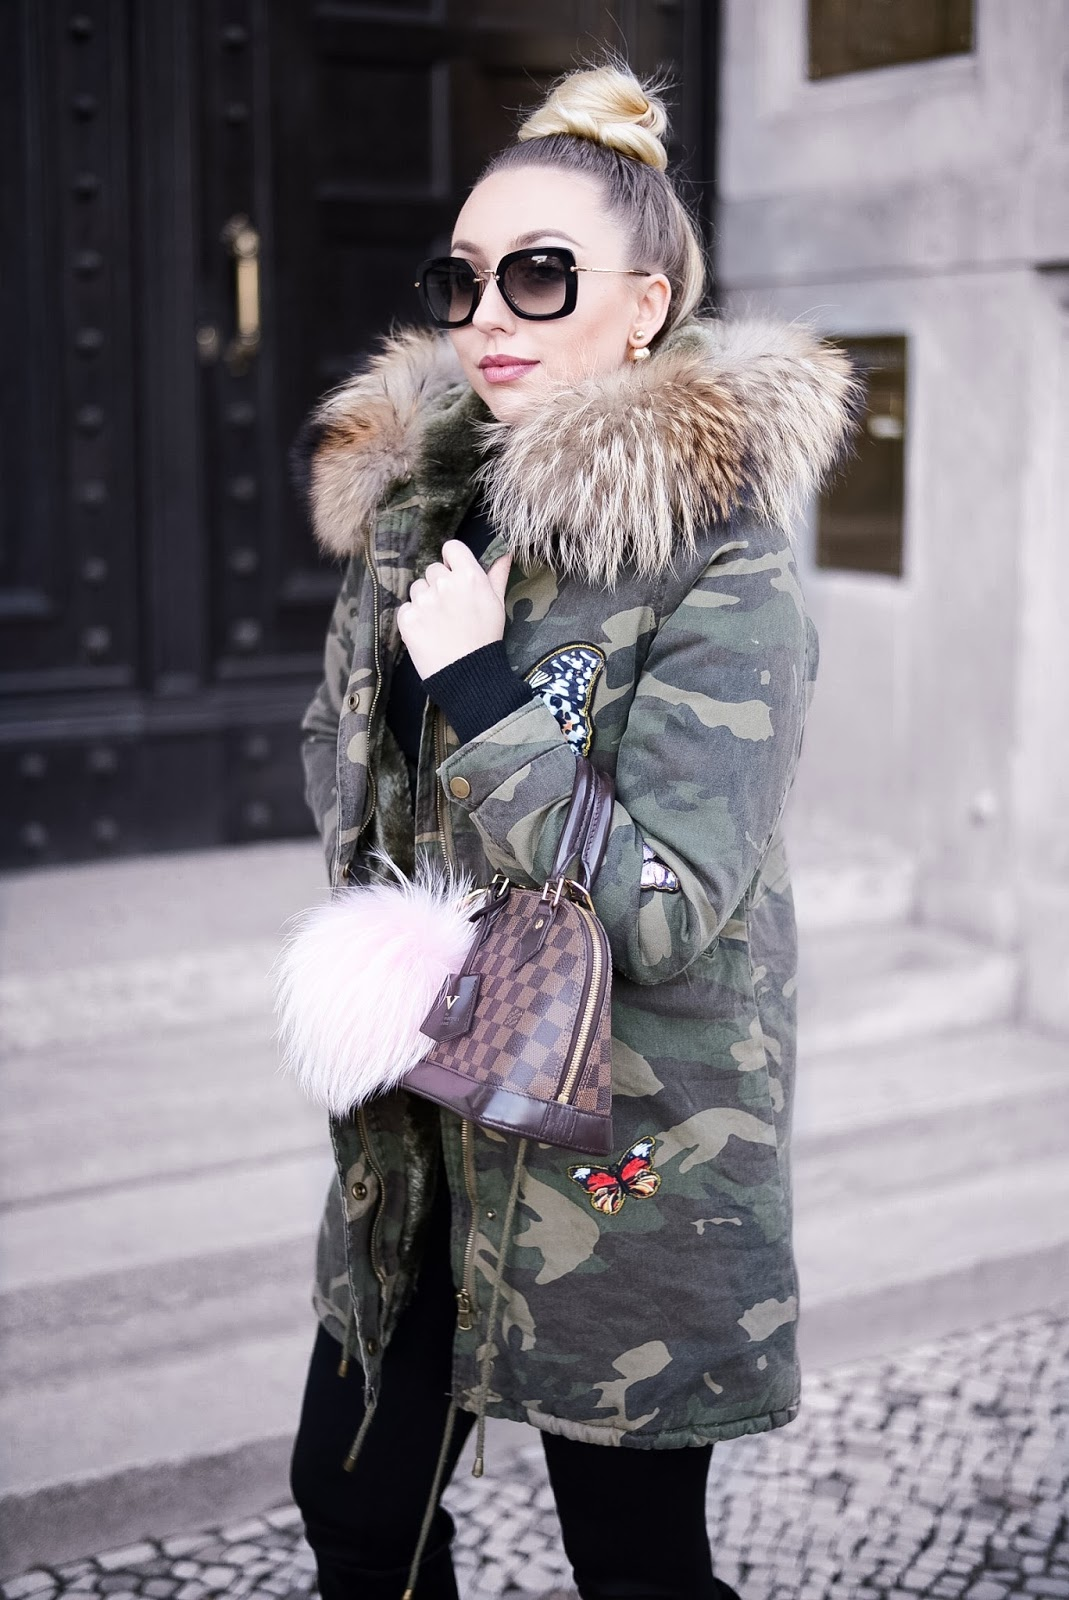 fur parka_camo parka_military parka_miu miu sunglasses_fur bag charm